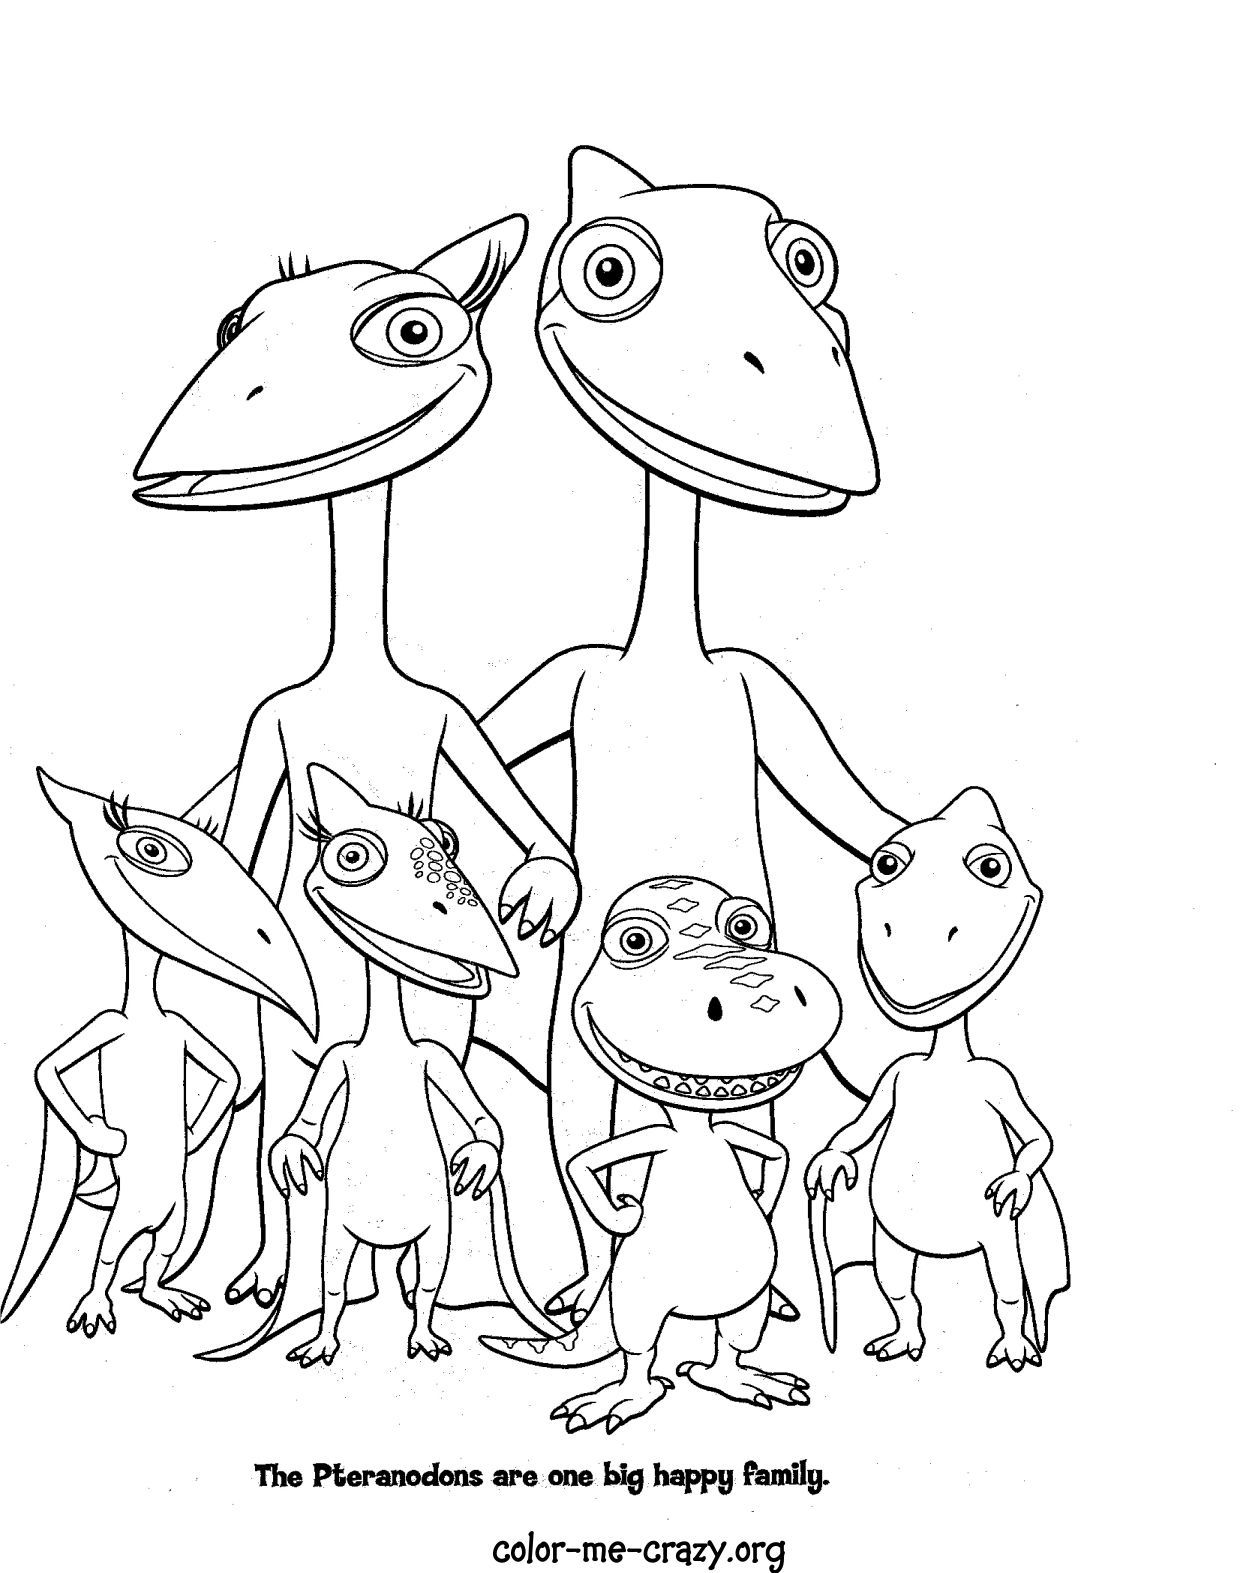 15 dinosaur train coloring pages. Other ideas for goodie bag ...